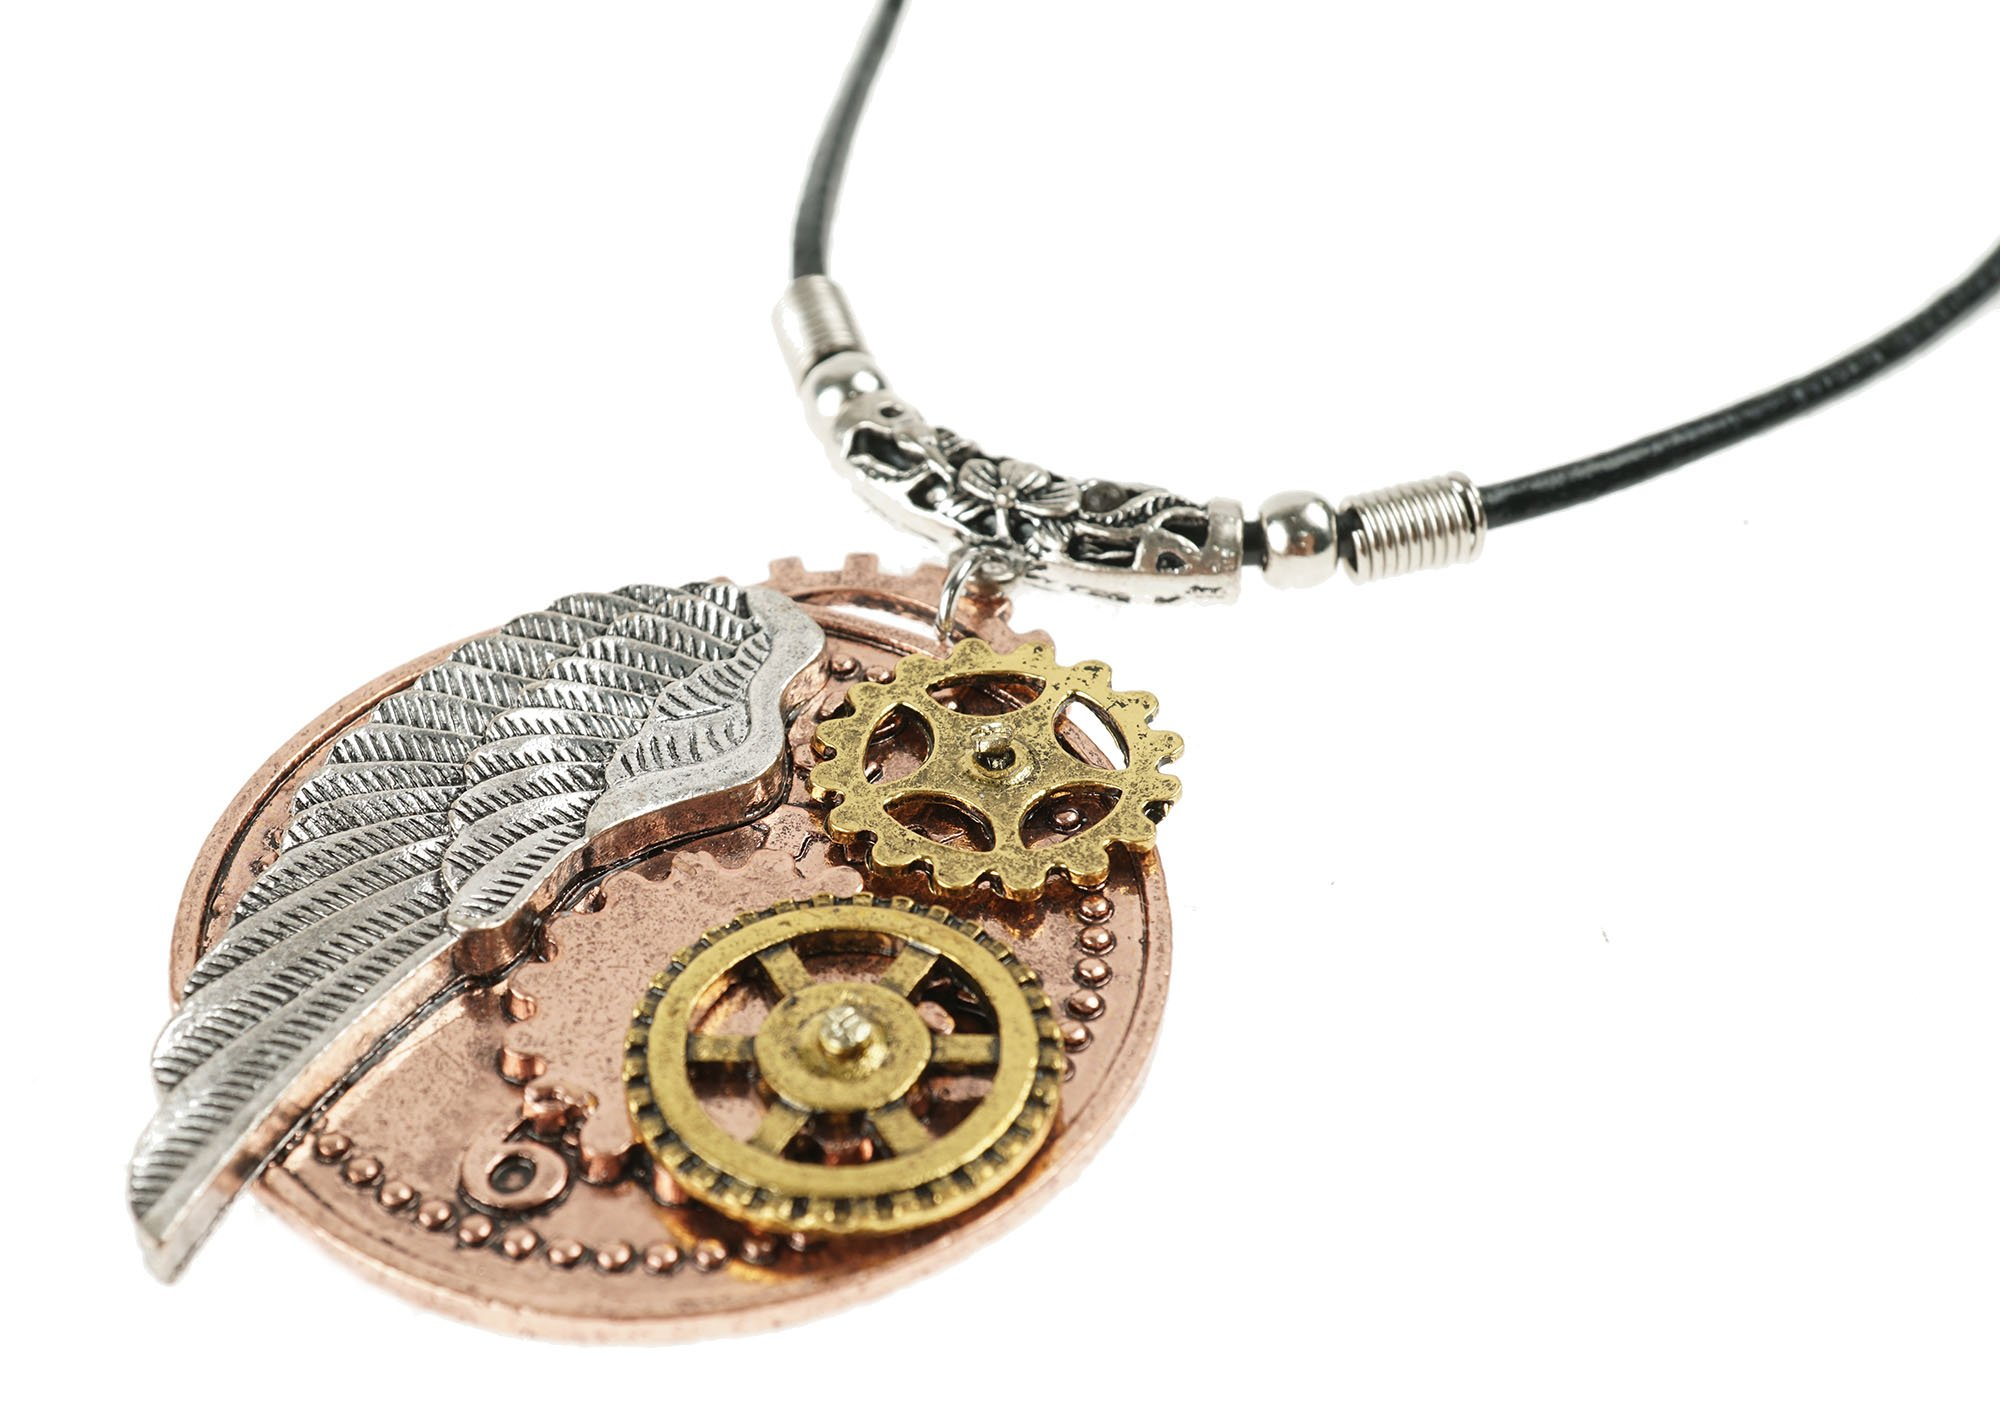 Heilong Fashion Retro Steampunk Gear Necklace Pendants Glamour Jewelry Accessories Gifts 6